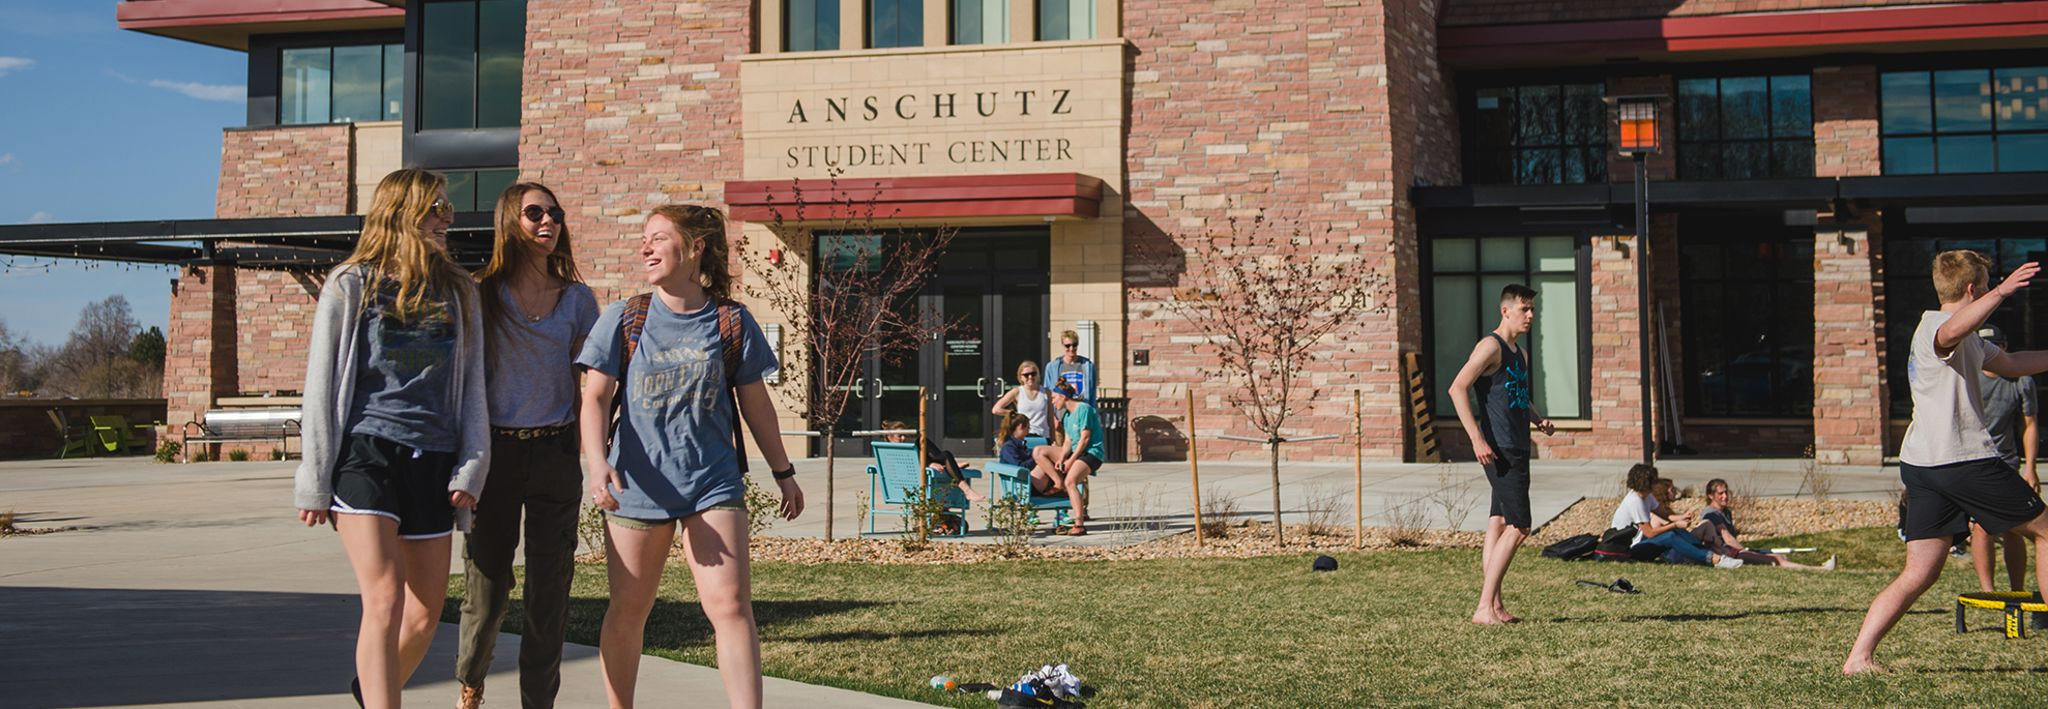 CCU students in front of Anschutz Student Center.